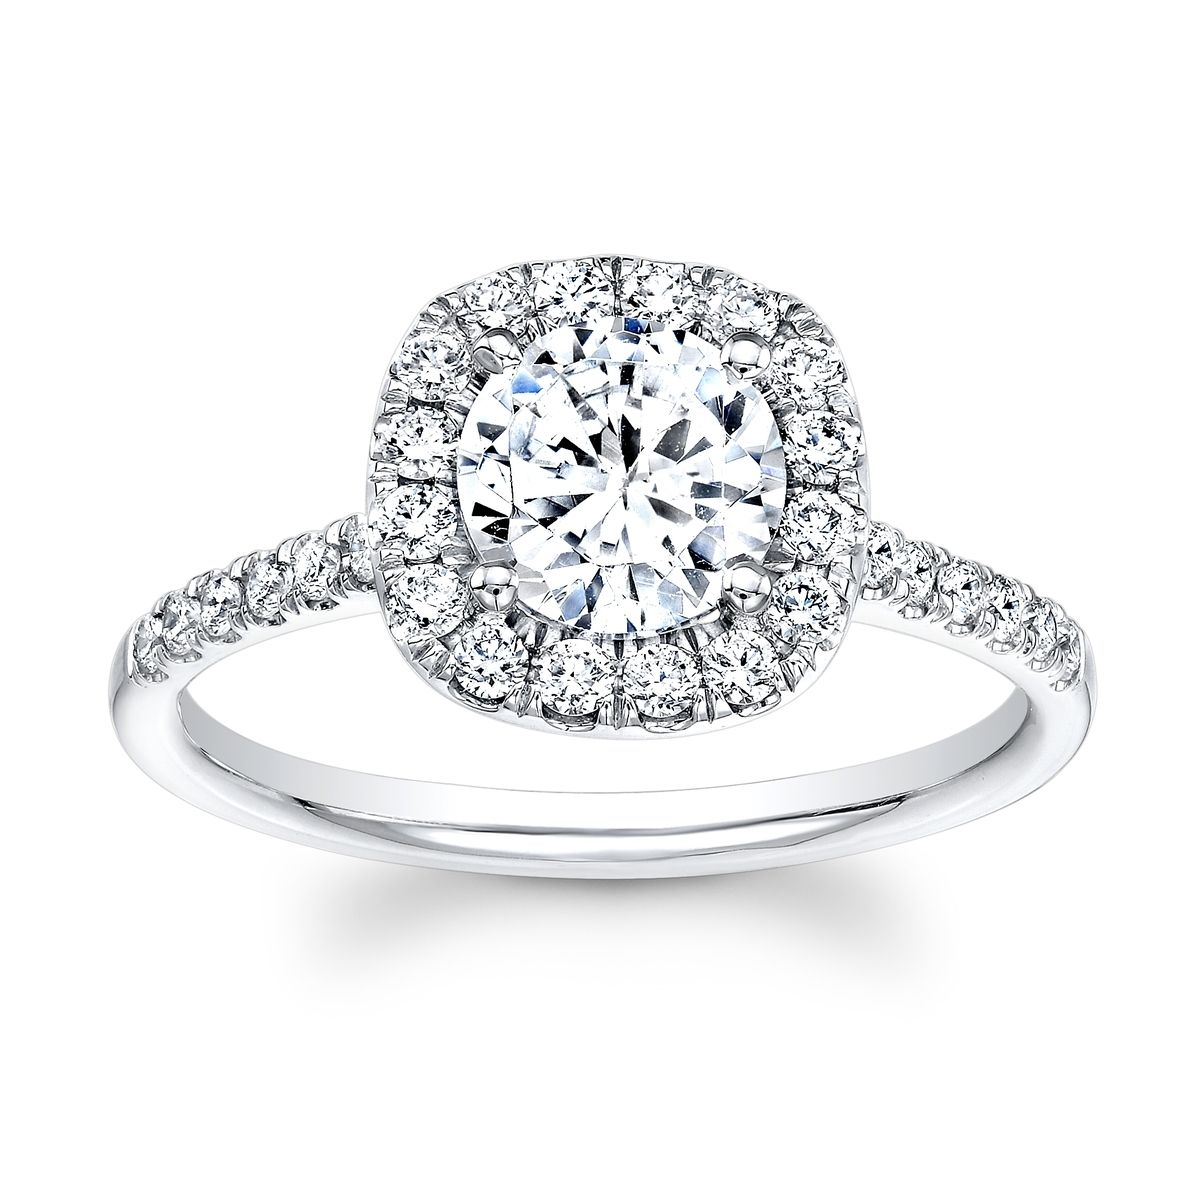 ideas not unexpectd gallery photos bands engagement that expecting gq ring she engagment proposals s best tiffany